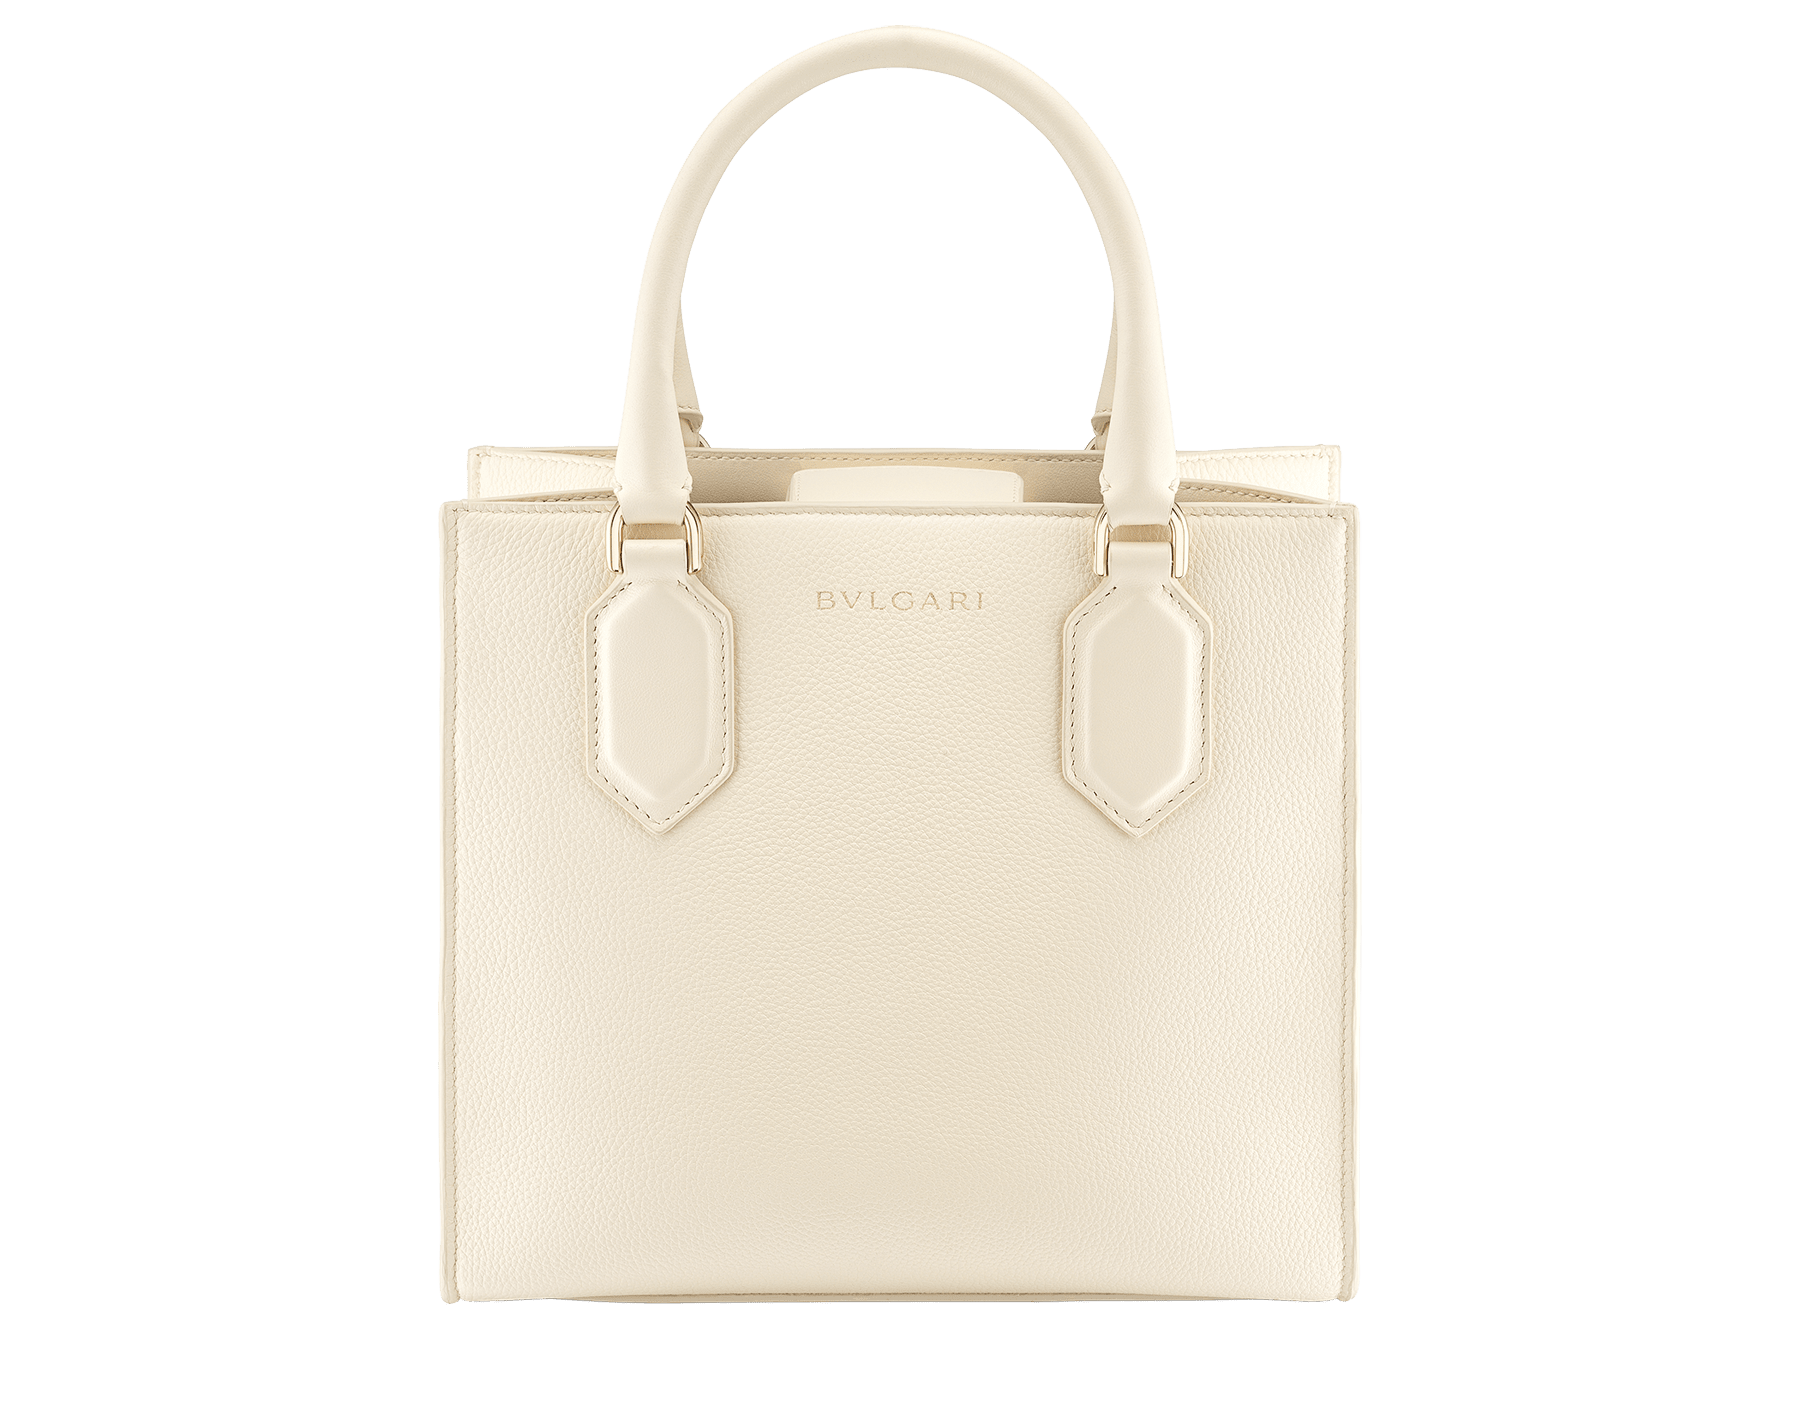 """Bvlgari Logo"" small tote bag in Ivory Opal white calf leather, with Beet Amethyst purple grosgrain inner lining. Bvlgari logo featuring light gold-plated brass chain inserts on the Ivory Opal white calf leather. BVL-1159-CL image 3"